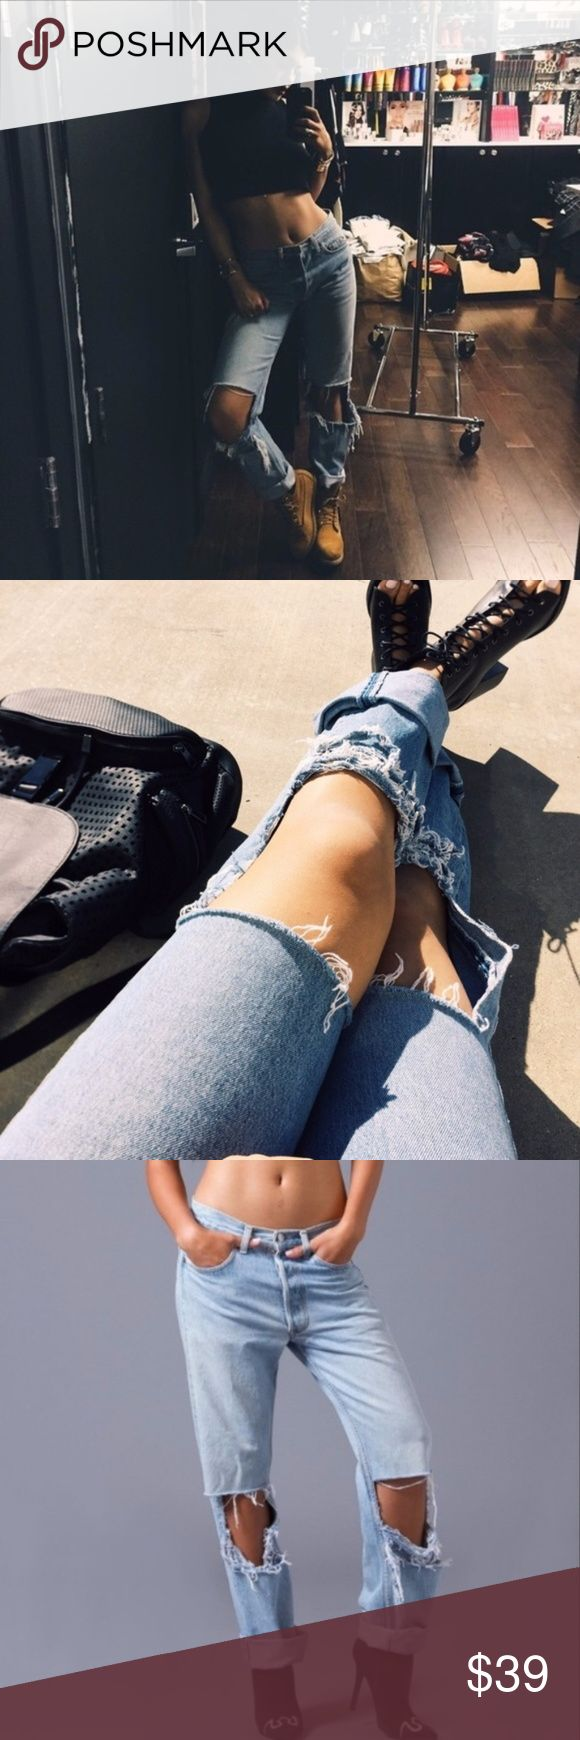 💫WORN BY KYLIE JENNER - LEVIS RIPPED JEANS💫 brand new VINTAGE. -ADD A BELT. FITS SIZES 28-35 THESE ARE MEANT TO BE WORN WITH A BELT ! Brandy Melville Pants